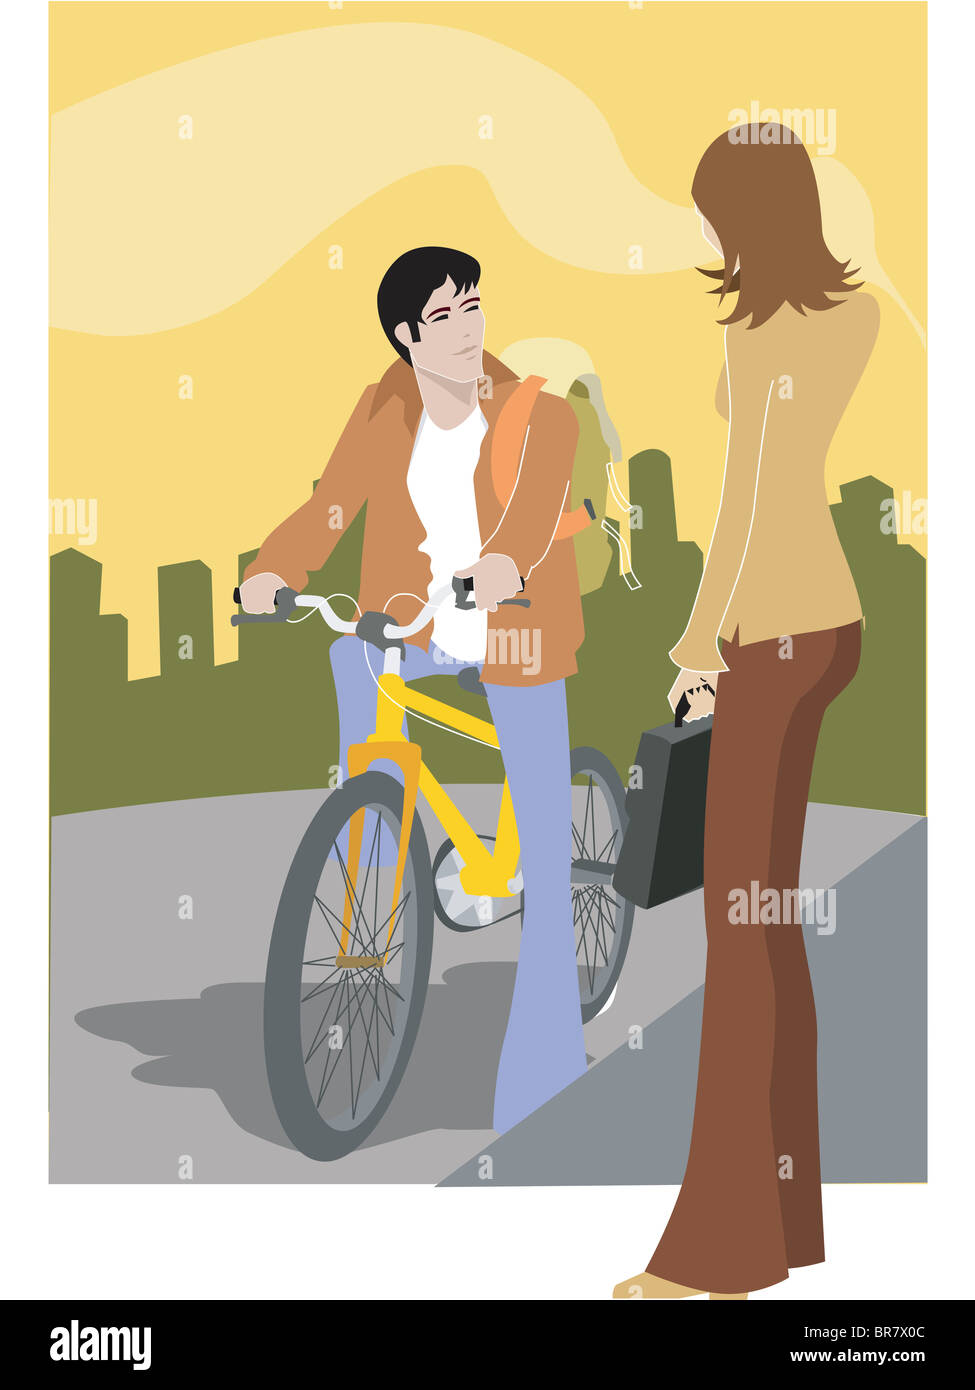 A woman talking to a man on a bike - Stock Image